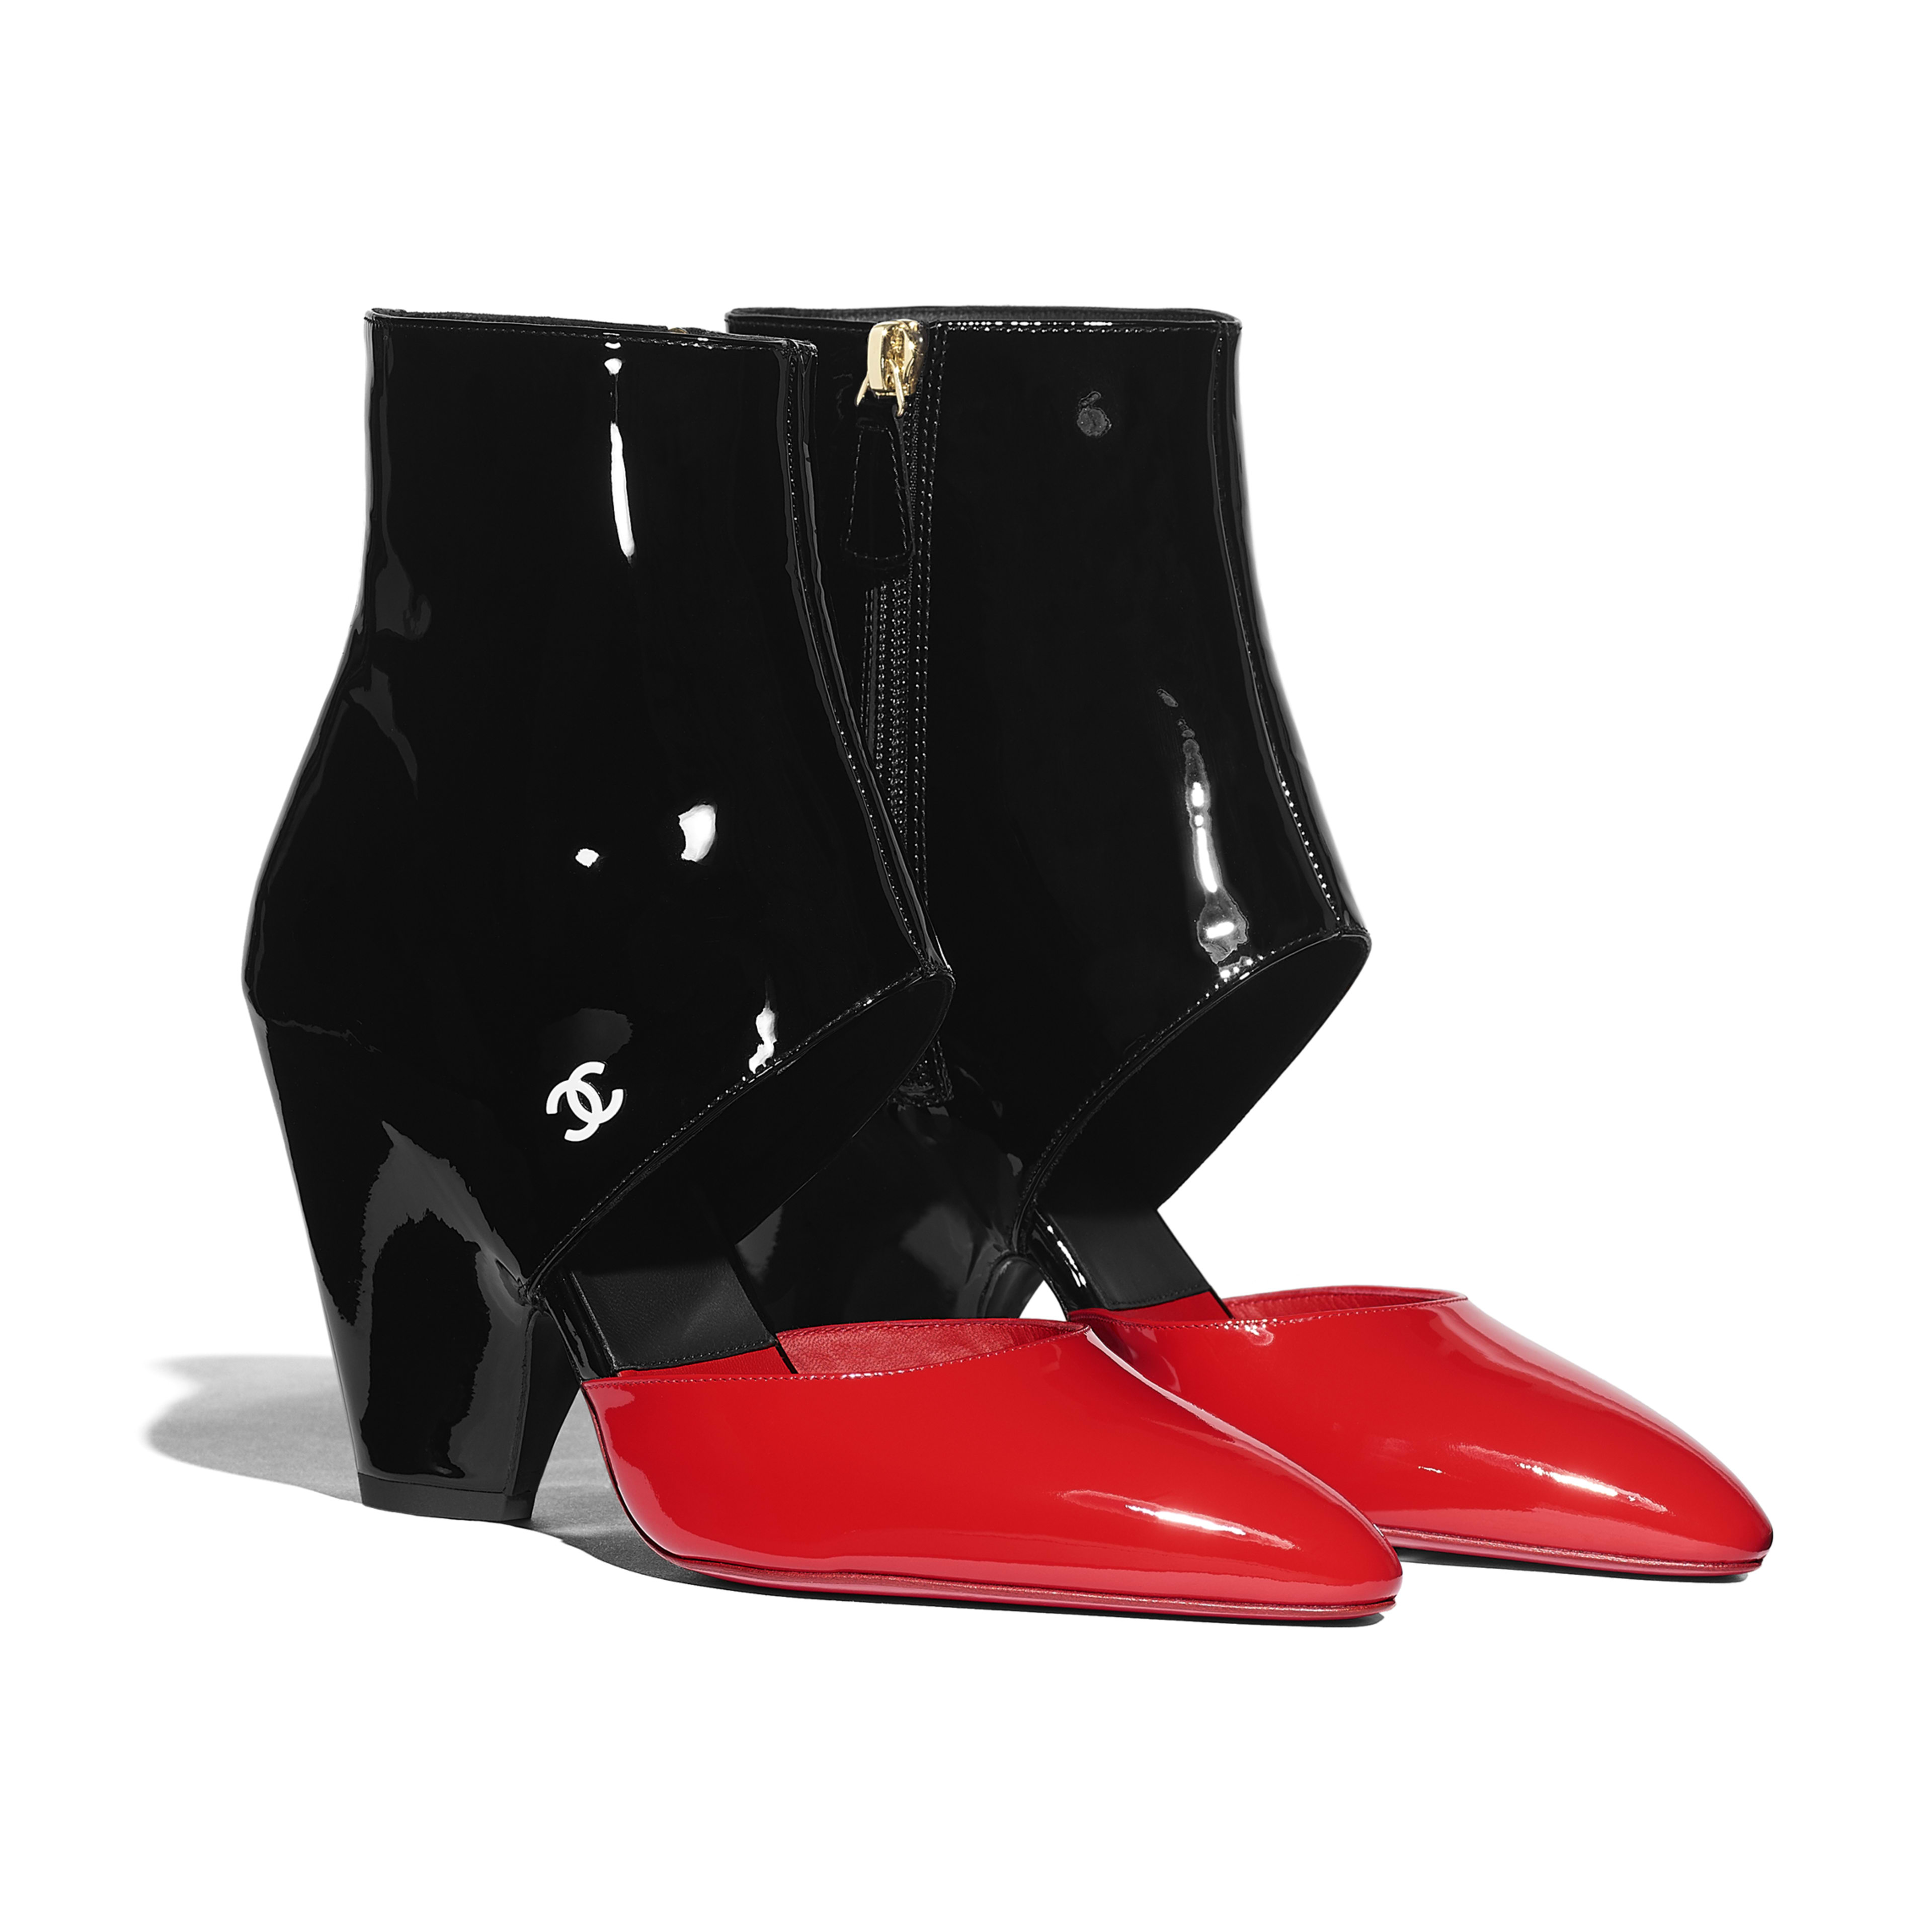 Open Ankle Boots - Red & Black - Patent Calfskin - Alternative view - see full sized version